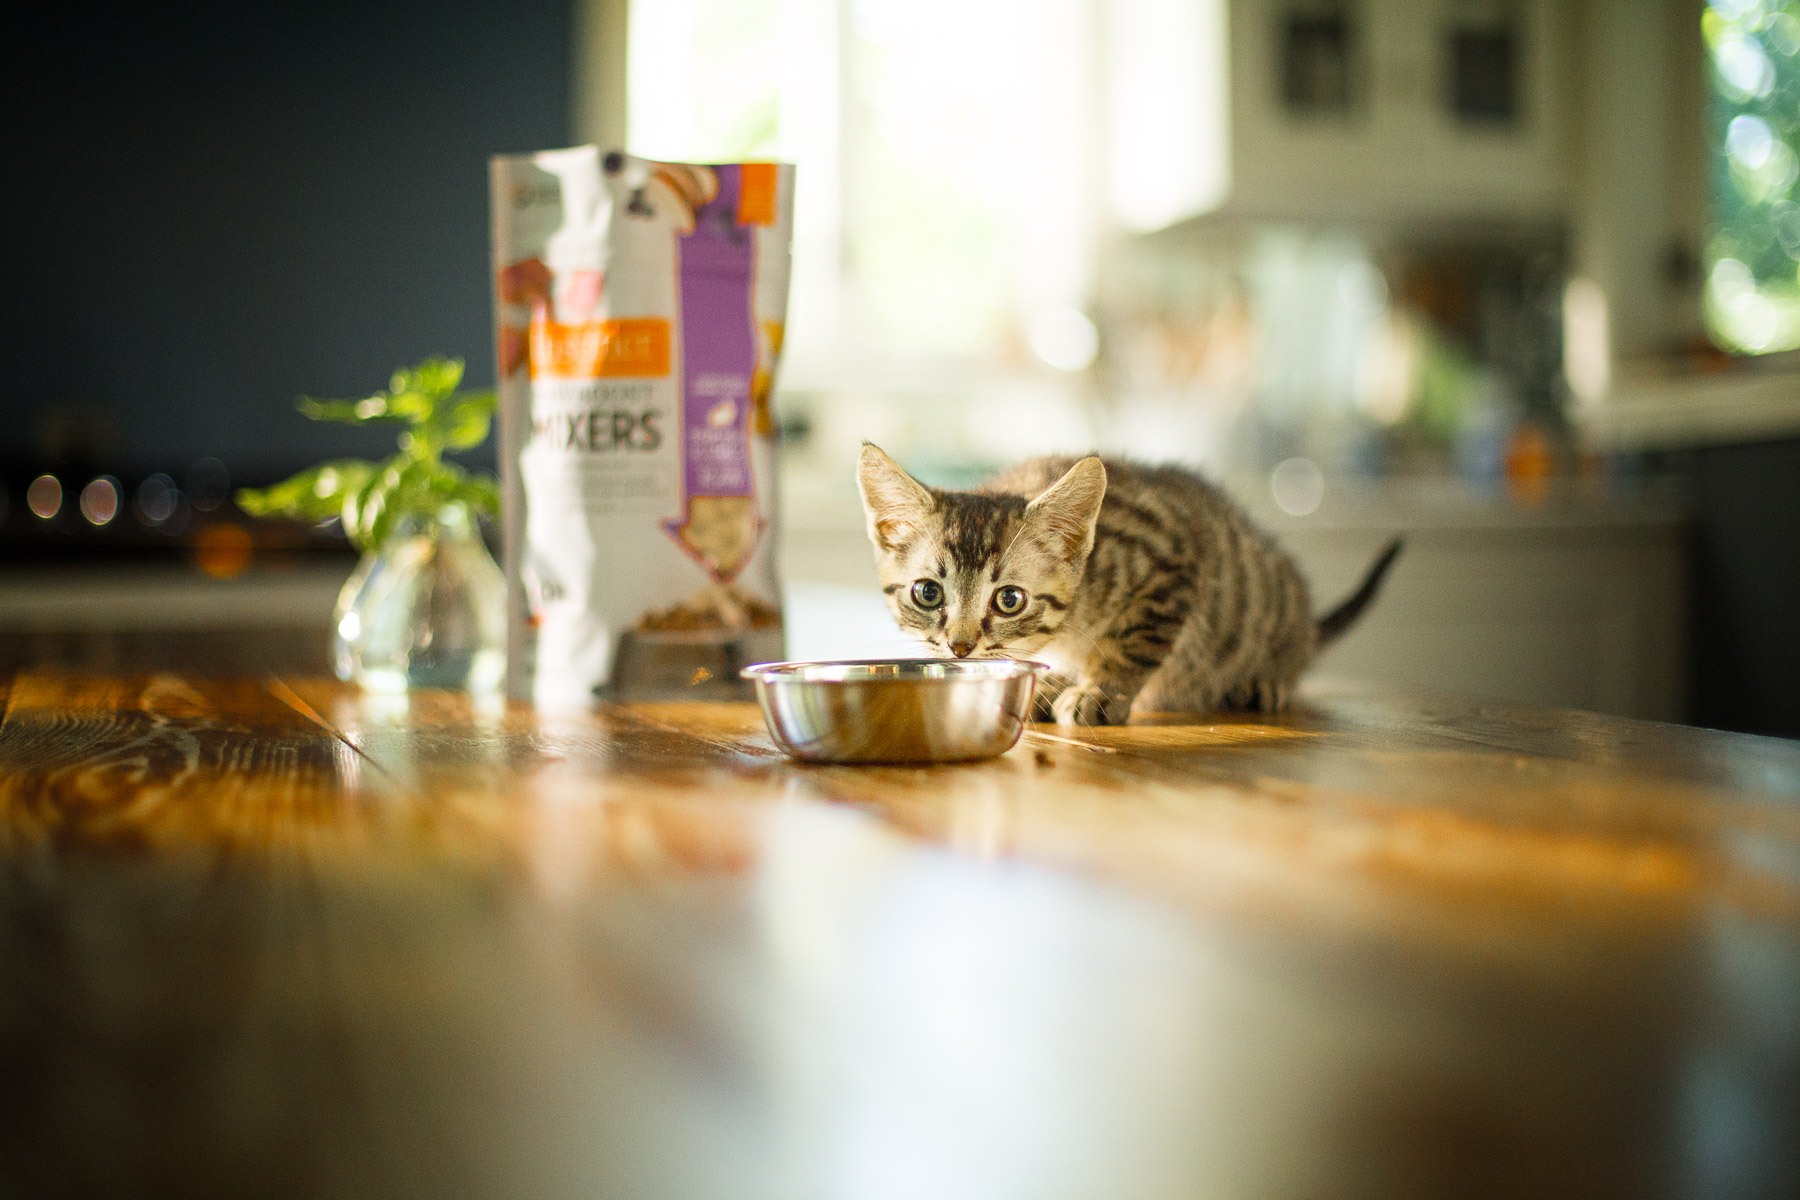 cat-eating-from-bowl-food-kitchen.jpg